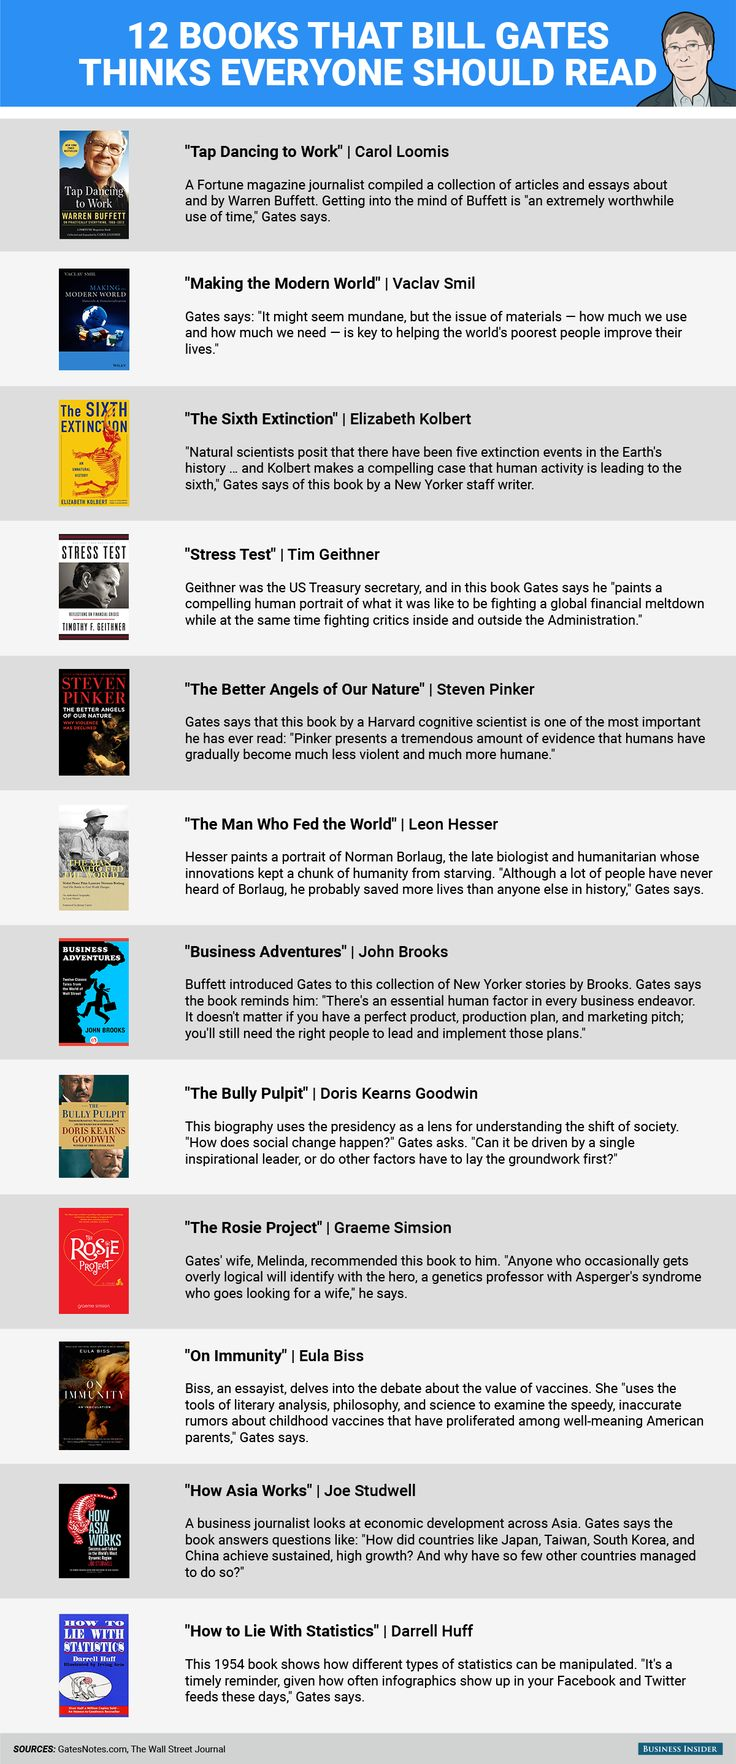 12 books that Bill Gates thinks everyone should read.